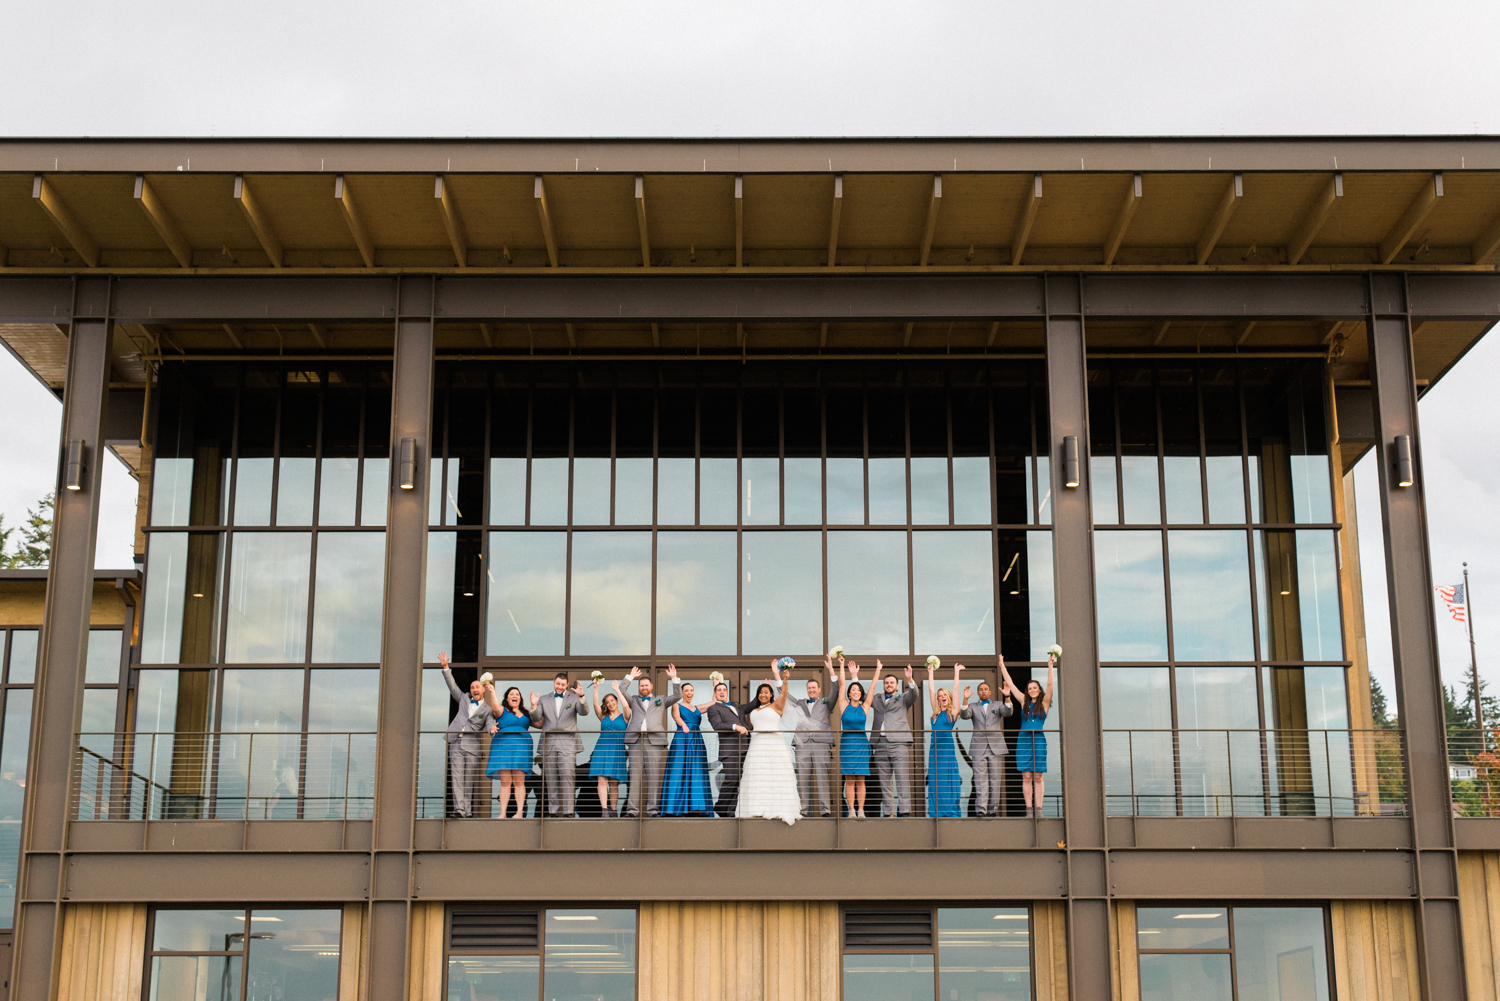 seattle-wedding-rosehill-community-center-bridal-party-blue-gray-shelley-marie-photo-